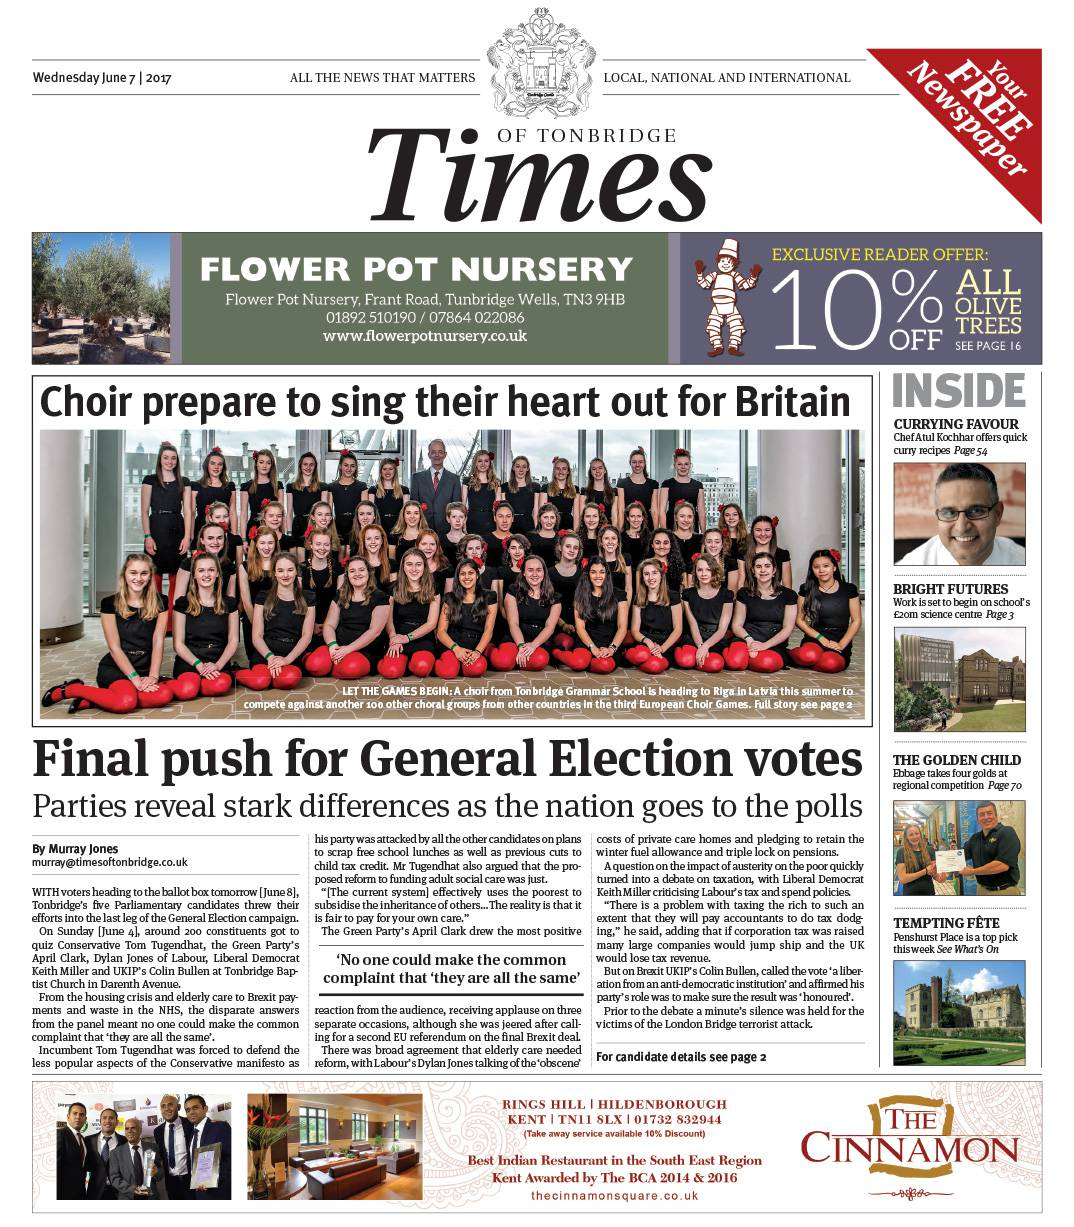 Read the Times of Tonbridge 7th June 2017